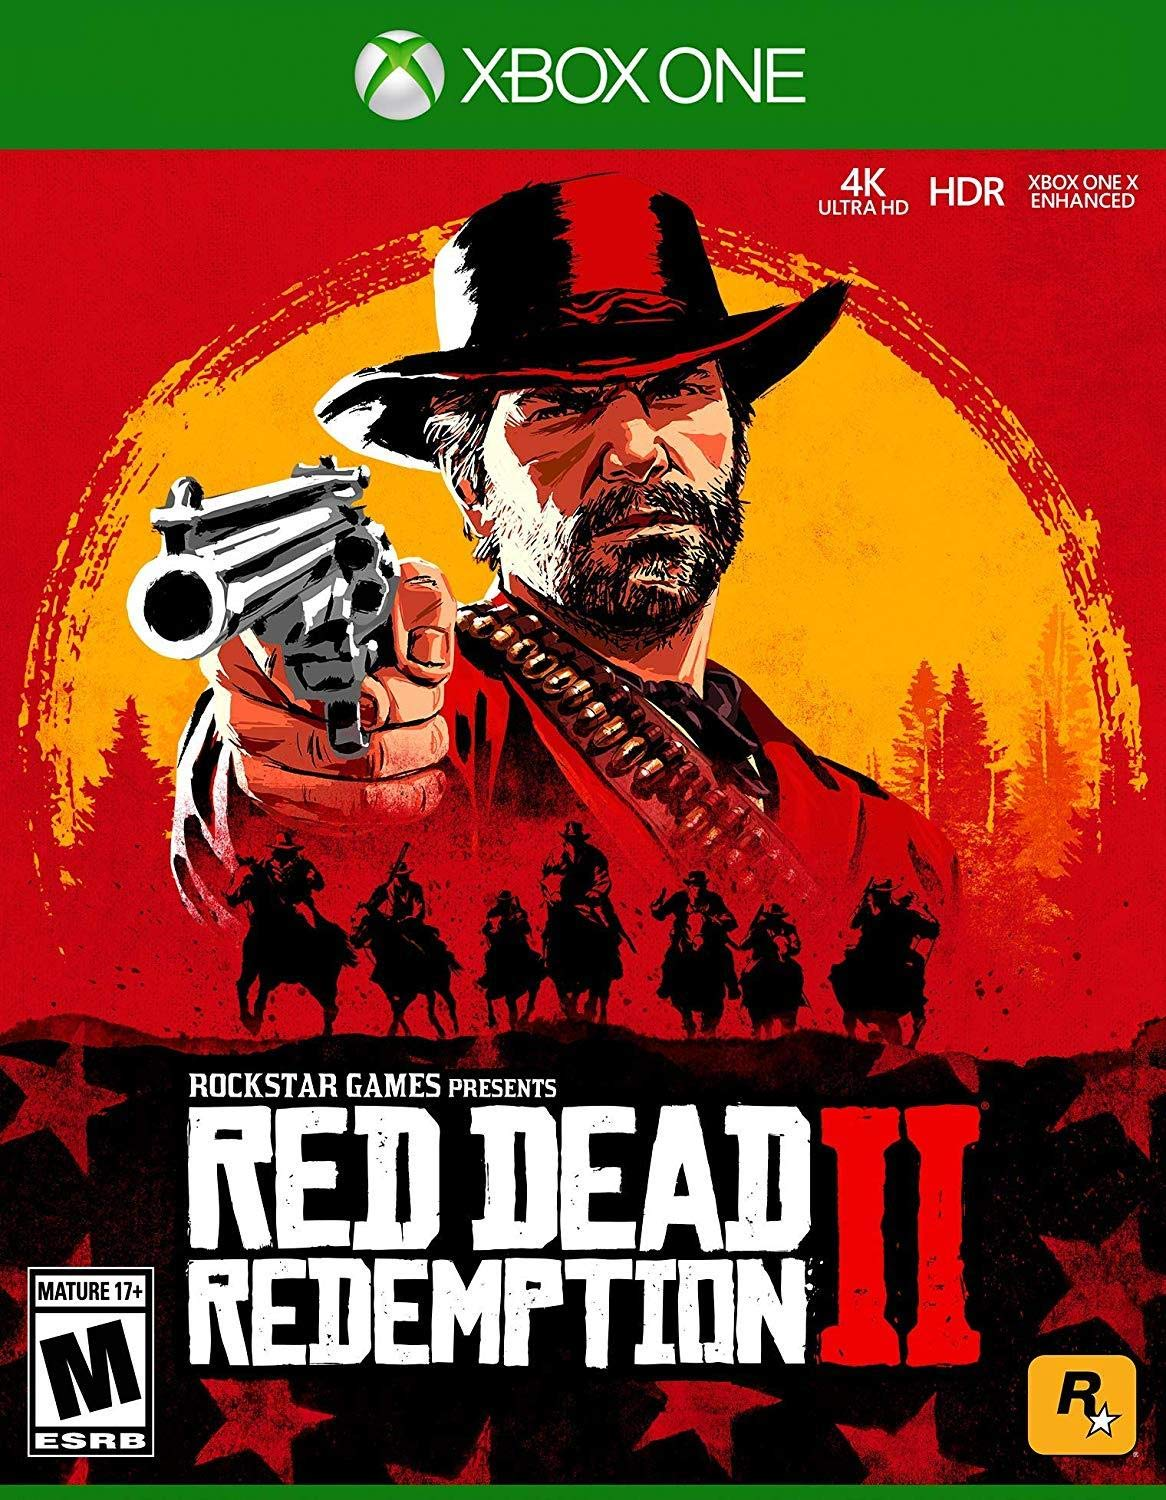 Red Dead Redemption 2 - Xbox One by Rockstar Games